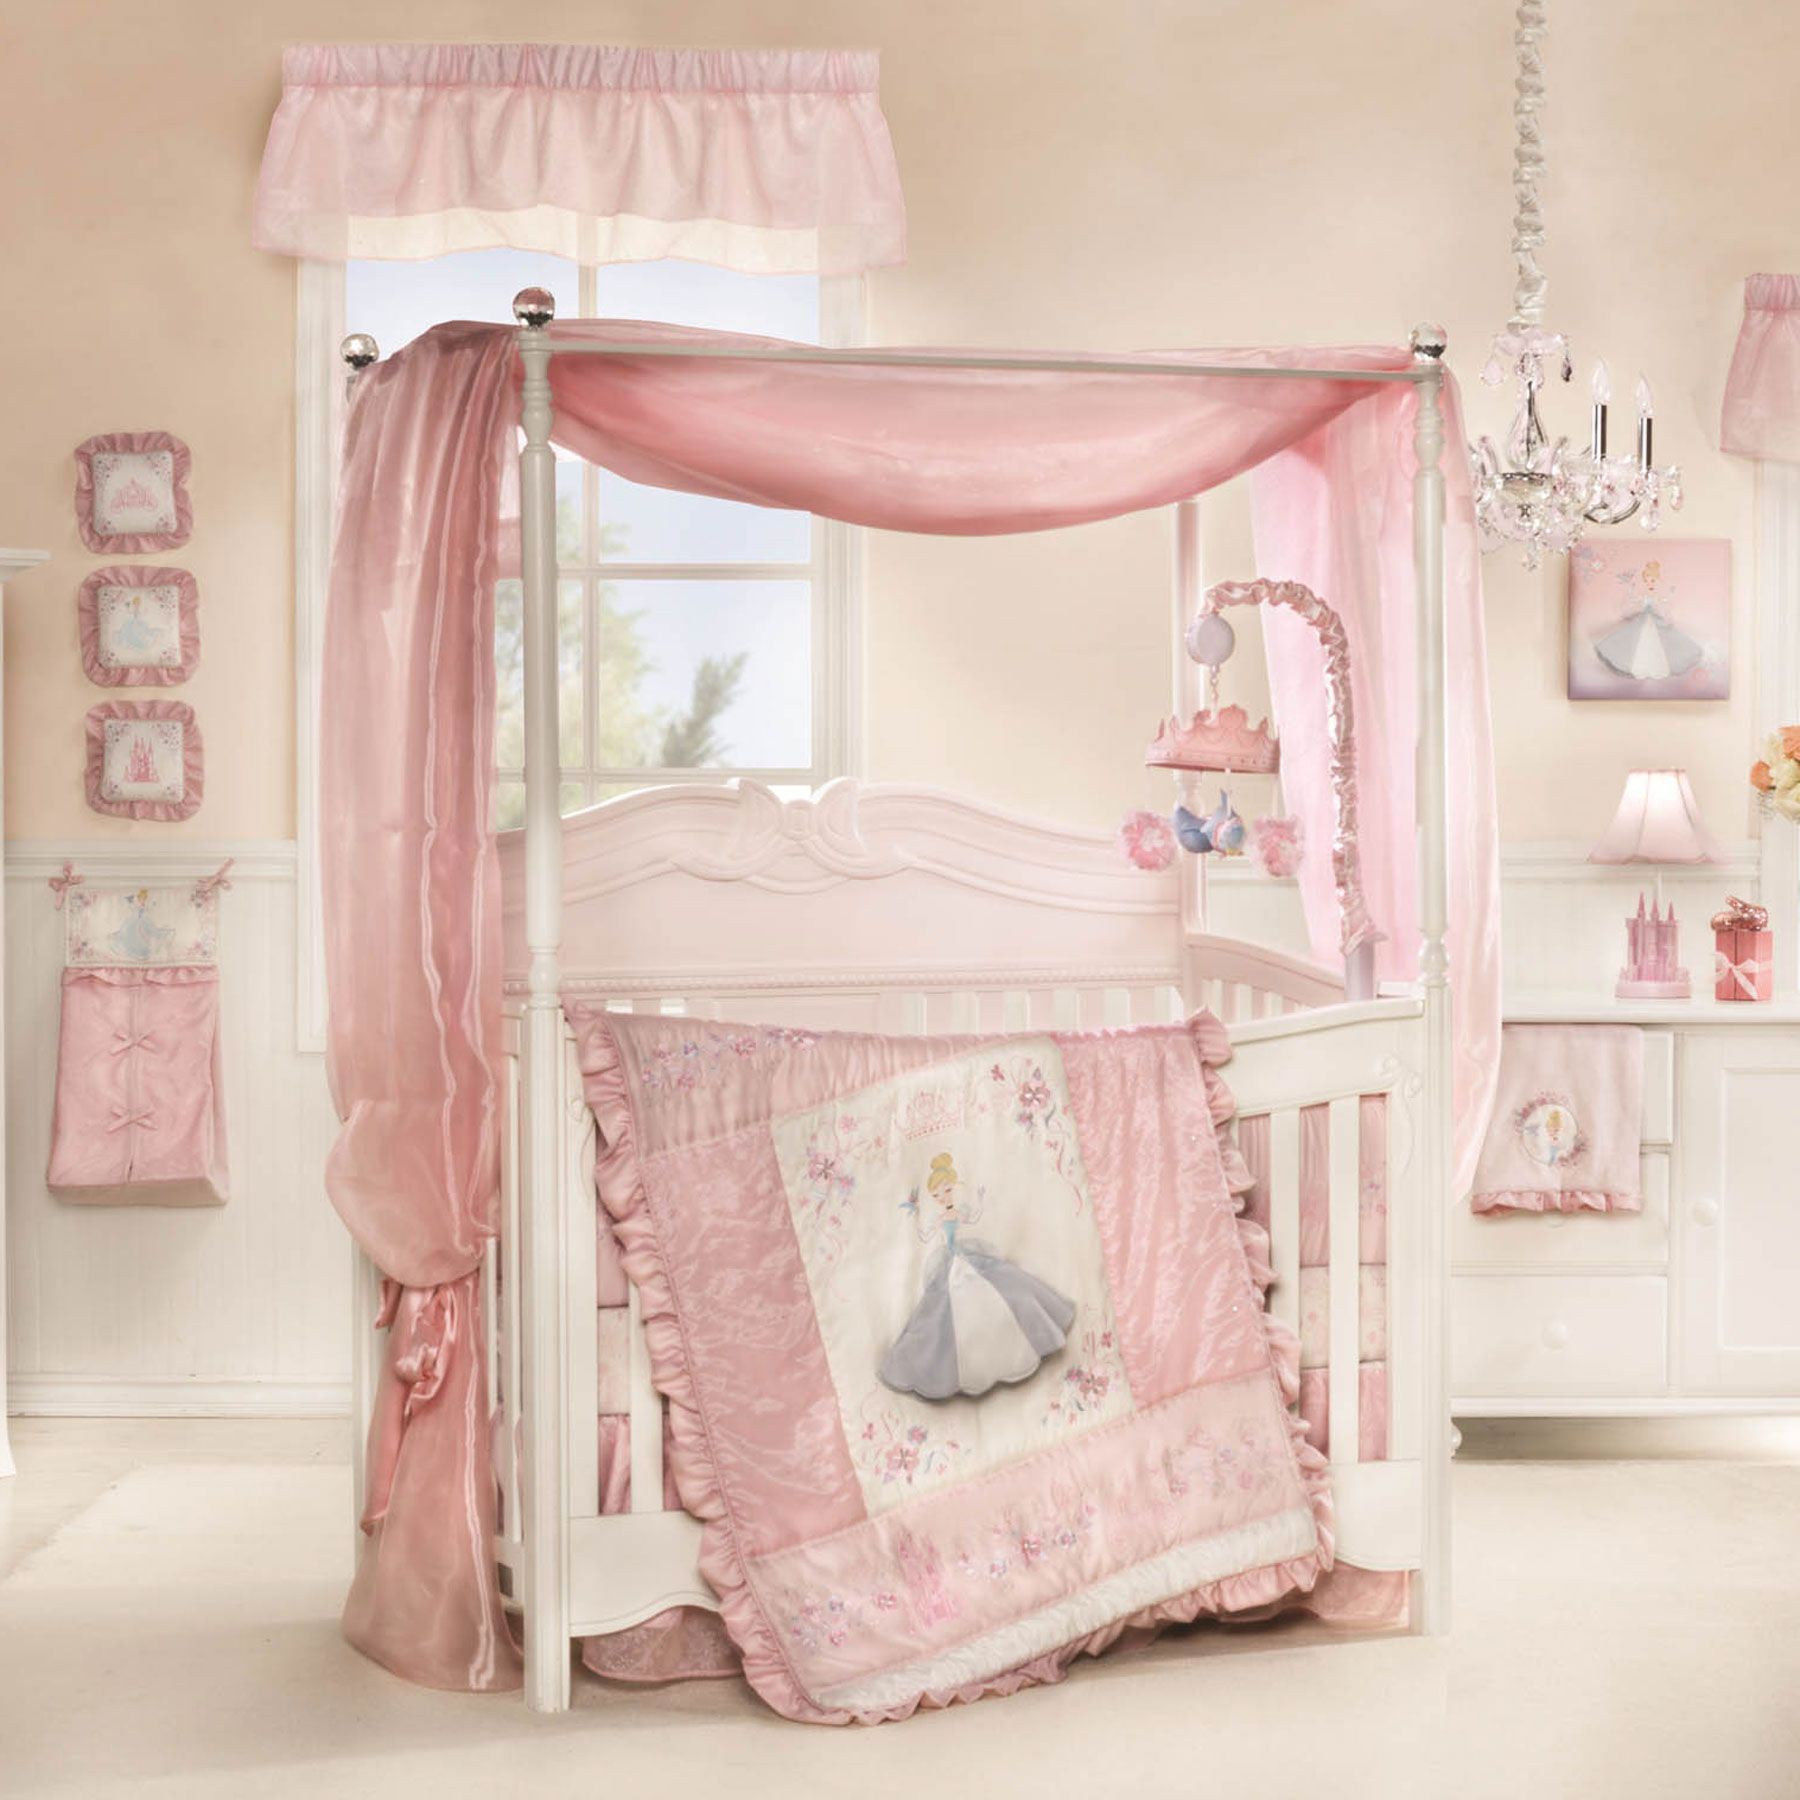 CINDERELLA Premier 7-Piece Crib Bedding Set featuring ...